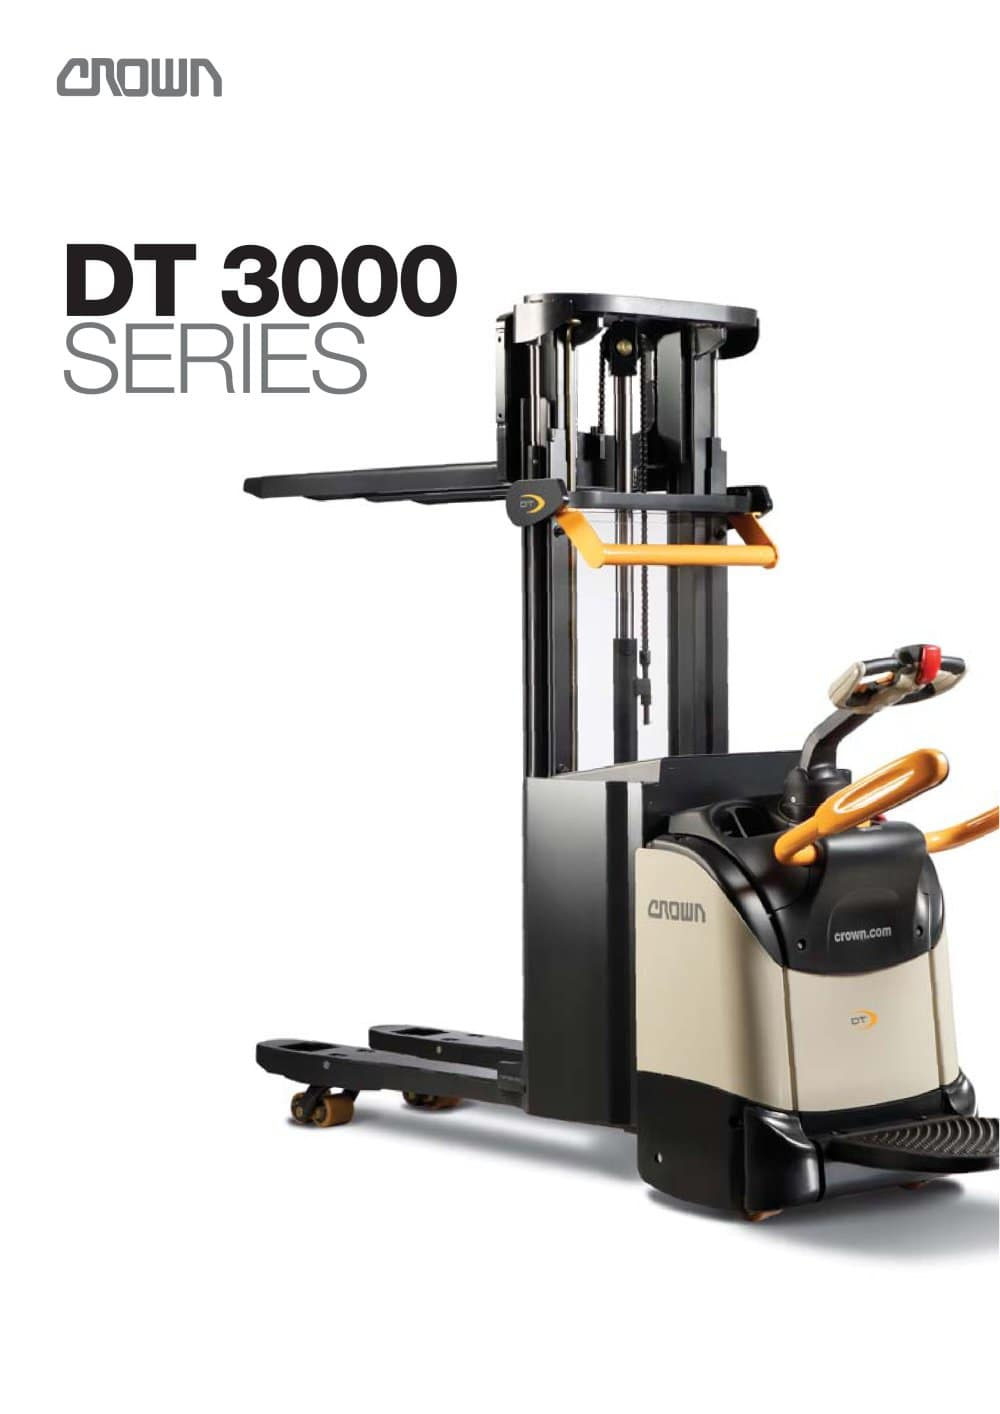 Double Stacker DT 3000 - 1 / 8 Pages